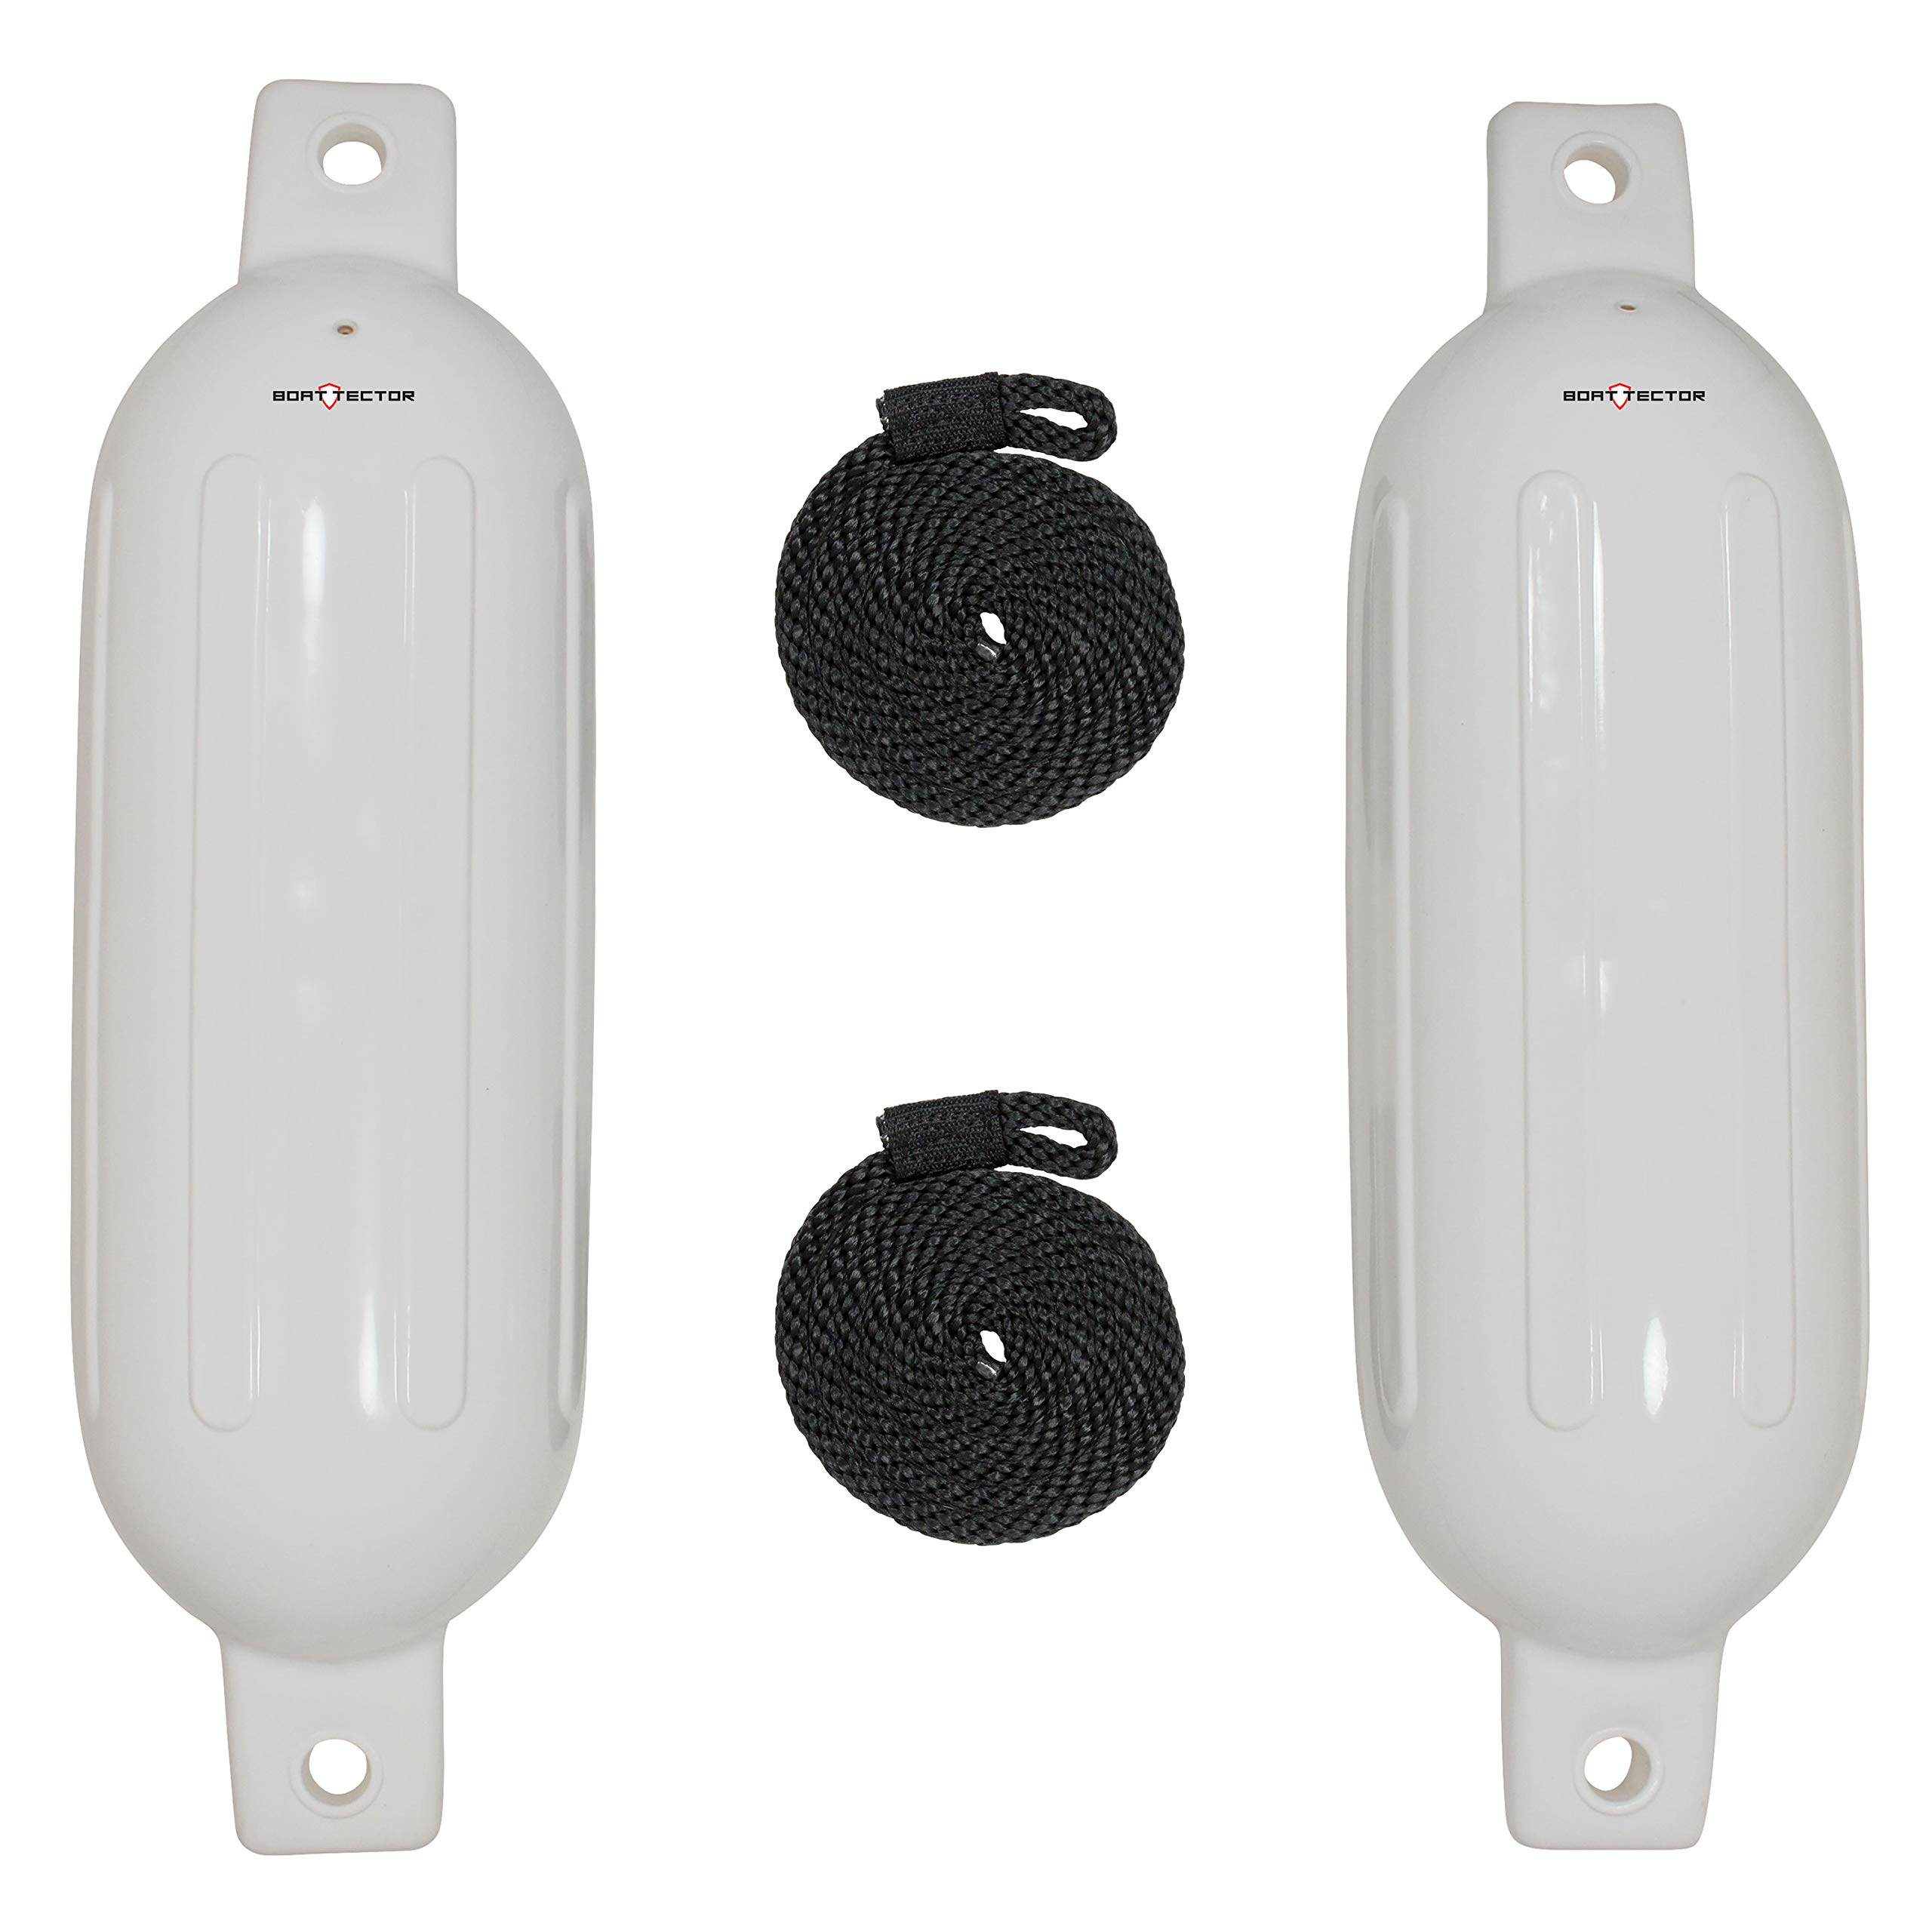 Extreme Max 3006.7201 BoatTector Fender Value 2-Pack - 6'' x 22'', White by Extreme Max